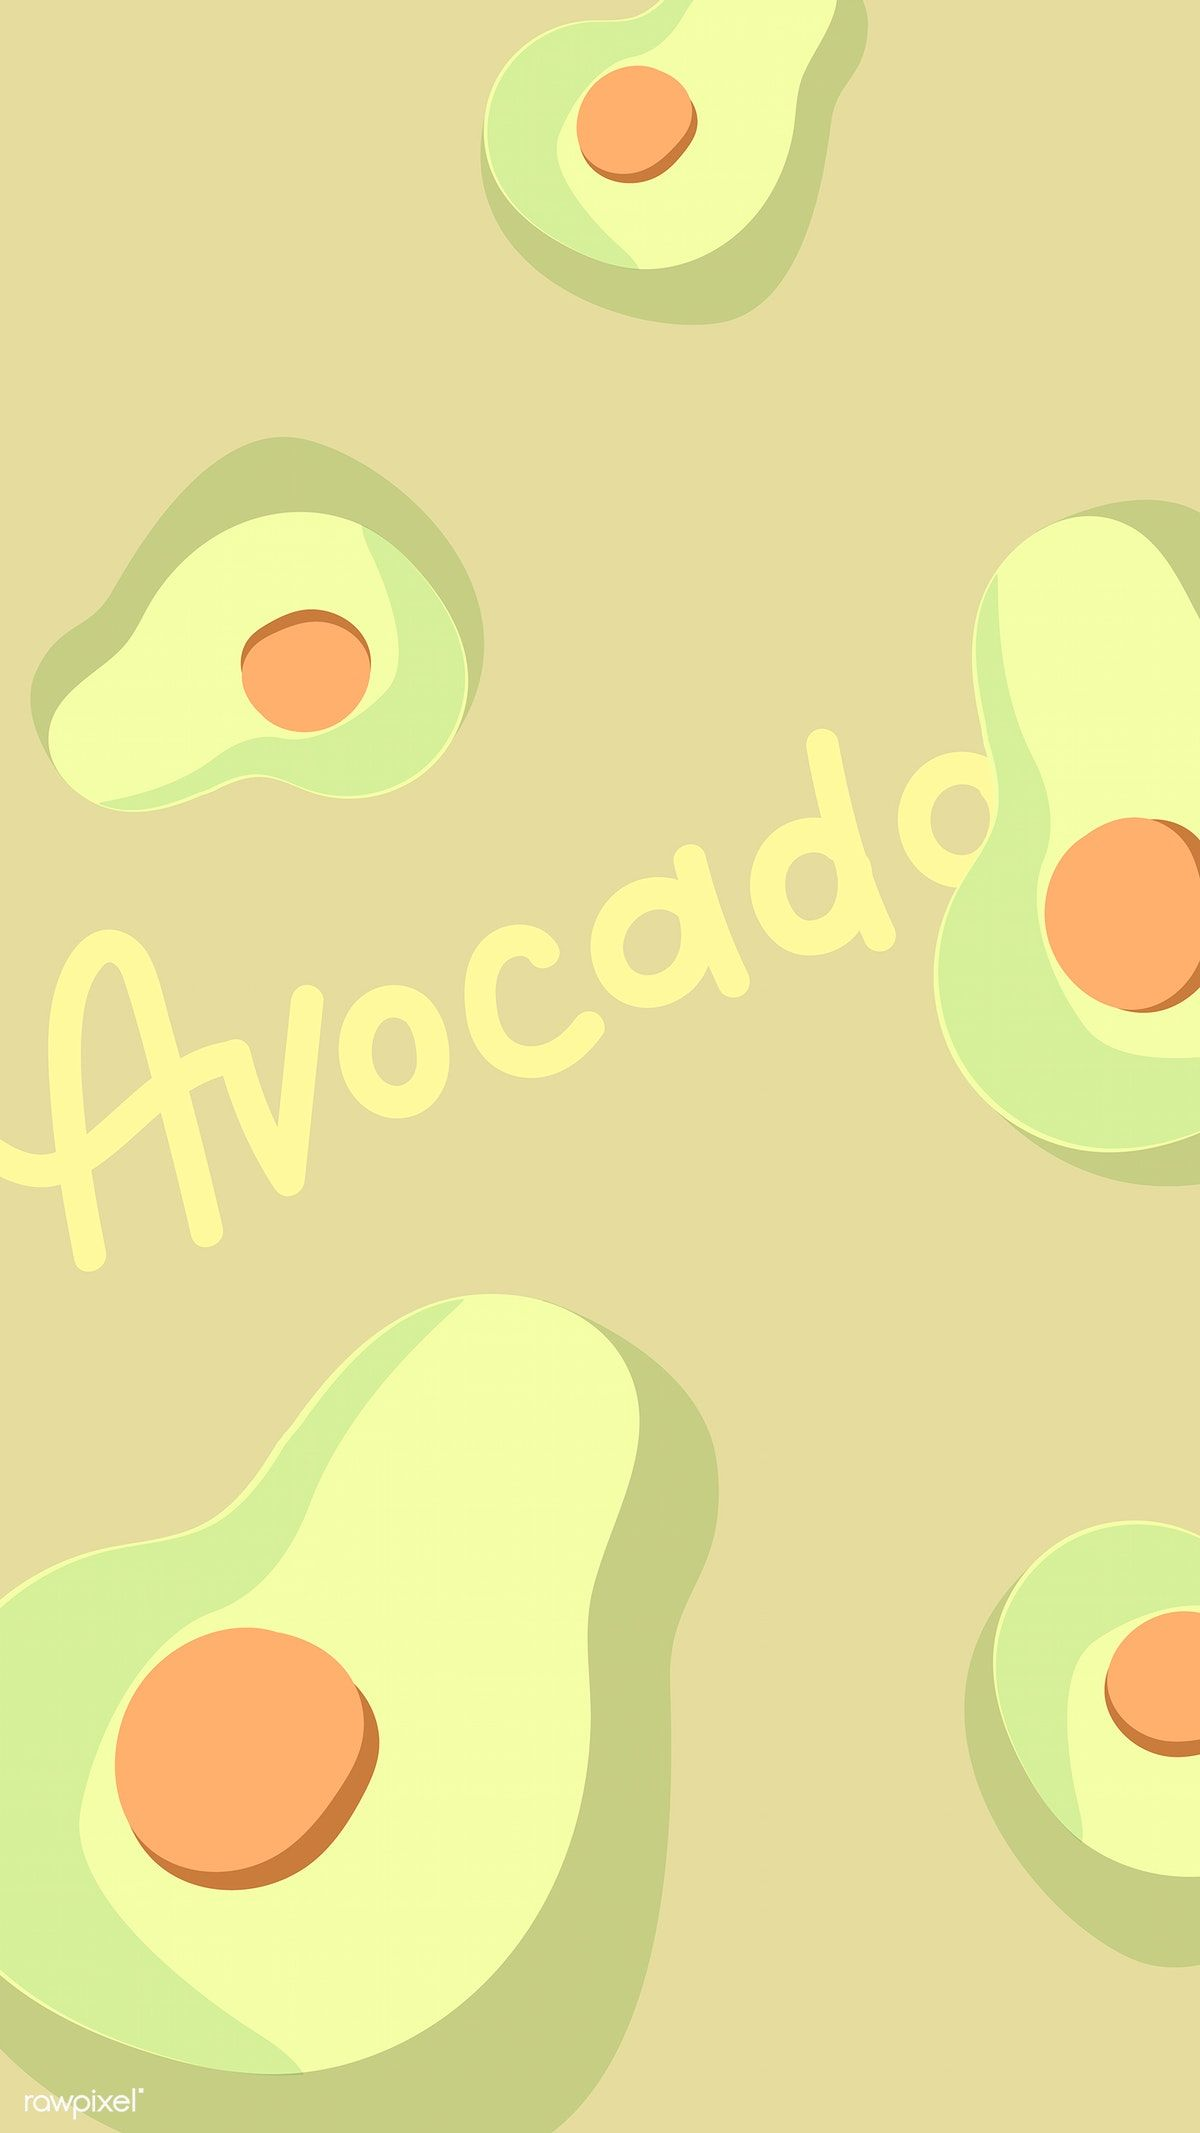 half avocados background vector free image by rawpixel